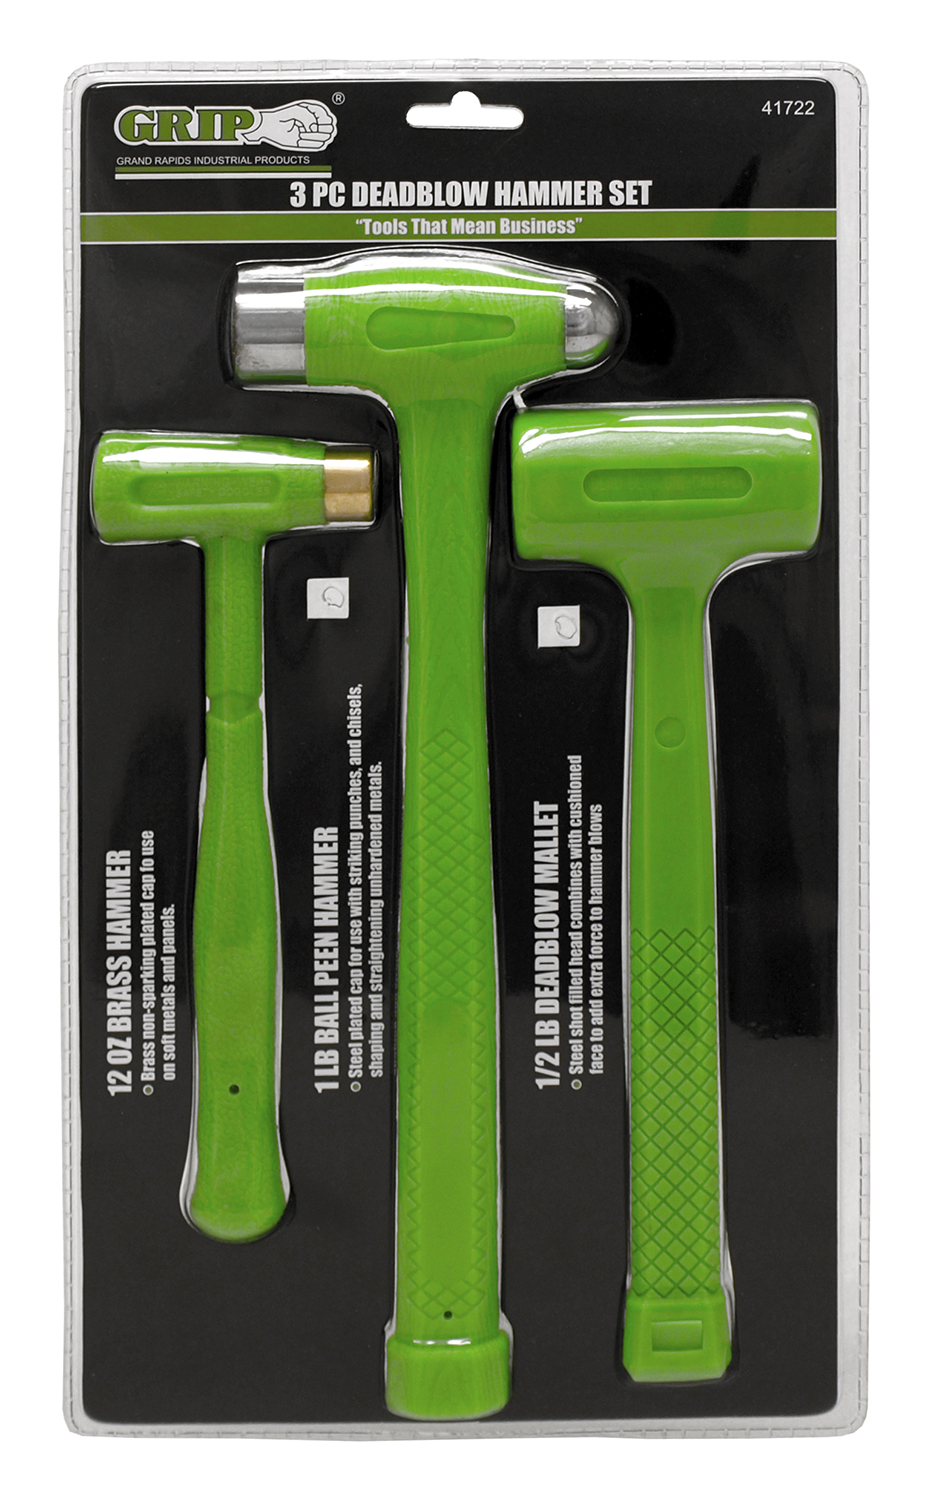 3 - pc. Deadblow Hammer Set - Grip